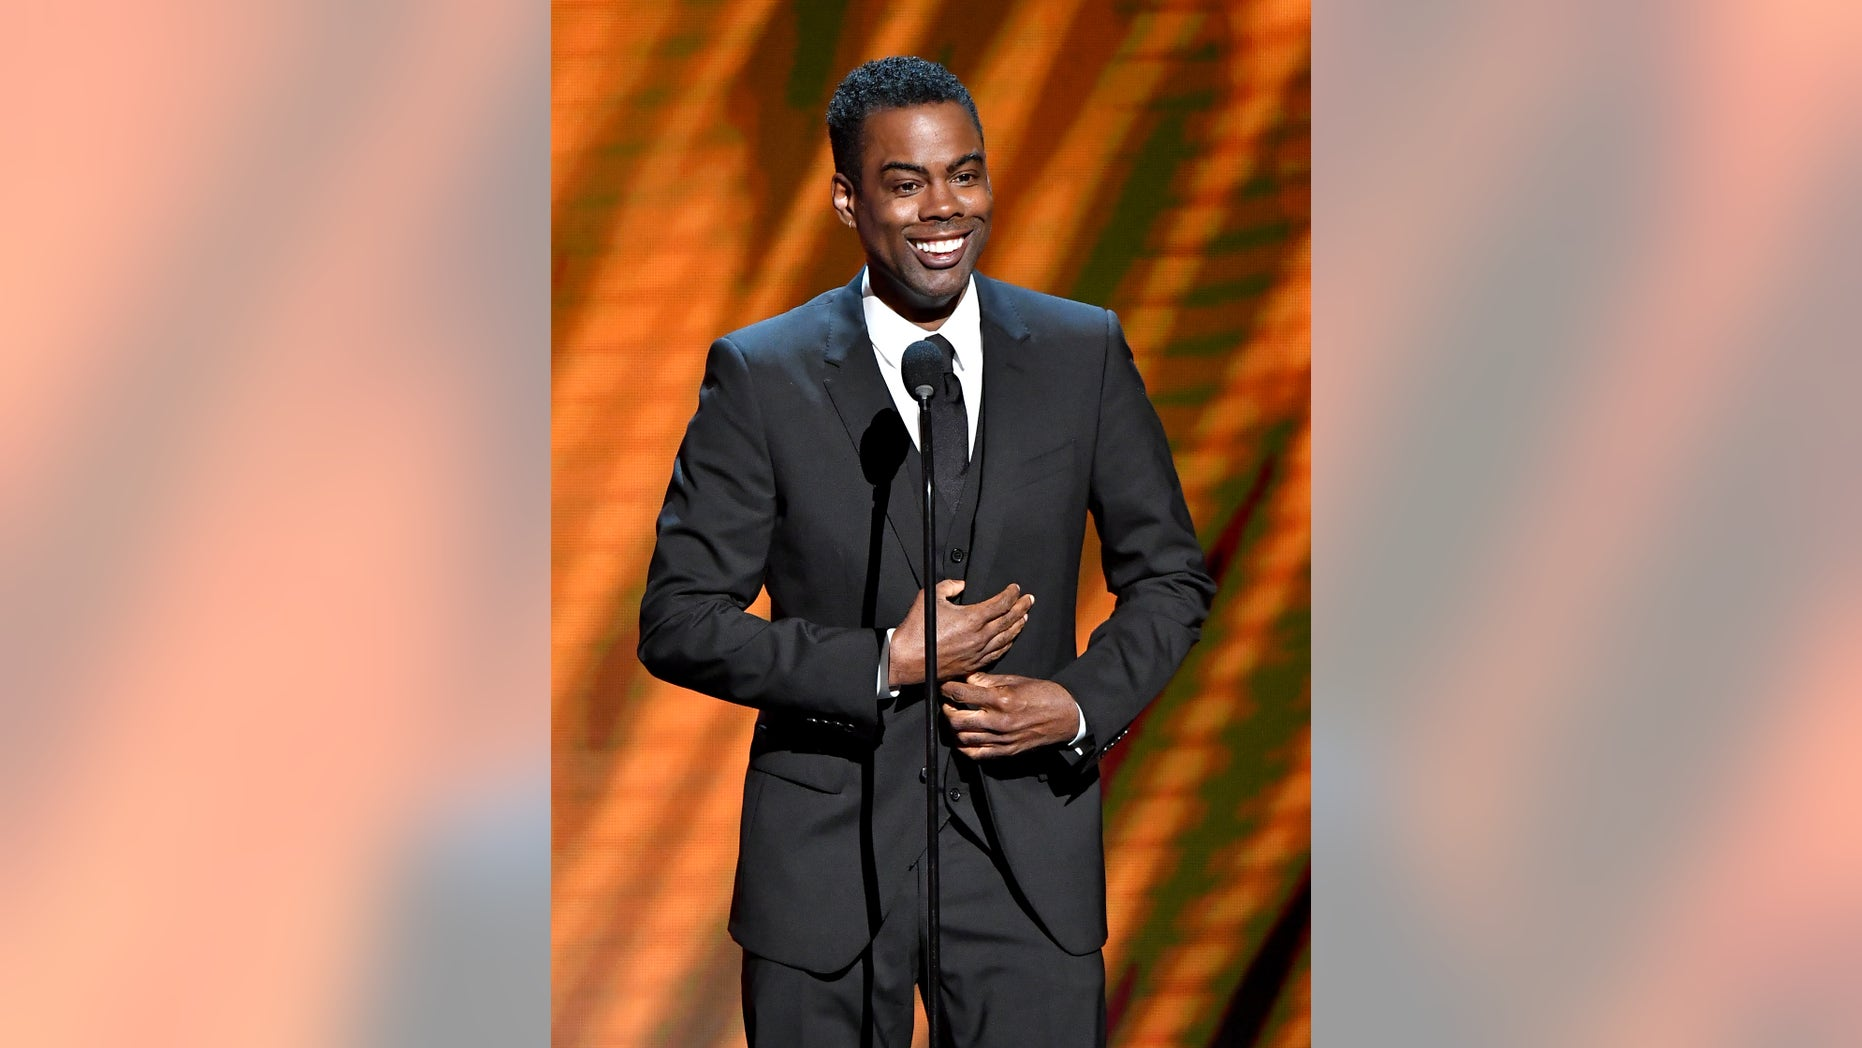 """Chris Rock speaks on stage at the 50th NAACP Image Awards at the Dolby Theater in Hollywood, California, March 30, 201<div class=""""e3lan e3lan-in-post1""""><script async src=""""//pagead2.googlesyndication.com/pagead/js/adsbygoogle.js""""></script> <!-- Text_Display_Ad --> <ins class=""""adsbygoogle""""      style=""""display:block""""      data-ad-client=""""ca-pub-7542518979287585""""      data-ad-slot=""""2196042218""""      data-ad-format=""""auto""""></ins> <script> (adsbygoogle = window.adsbygoogle 